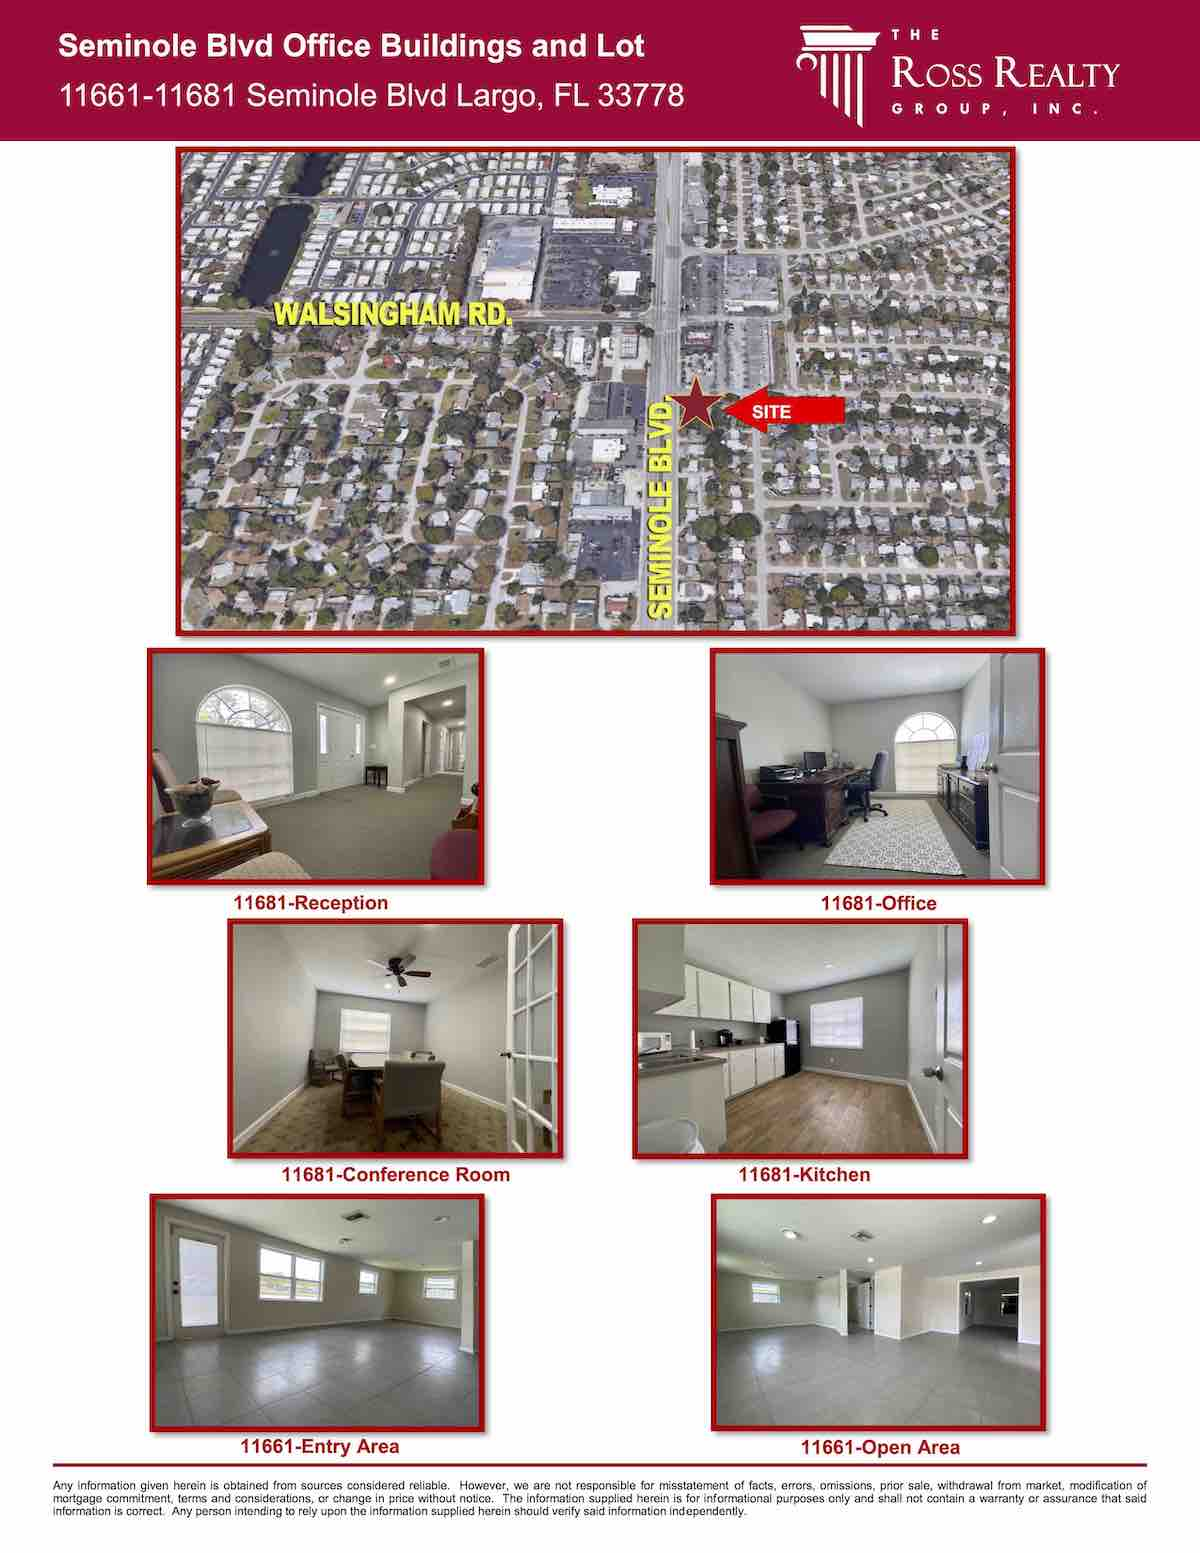 Tampa Commercial Real Estate - FOR SALE - Seminole Blvd Office Buildings and Lot - 11661-11681 Seminole Blvd Largo, FL 33778 P2